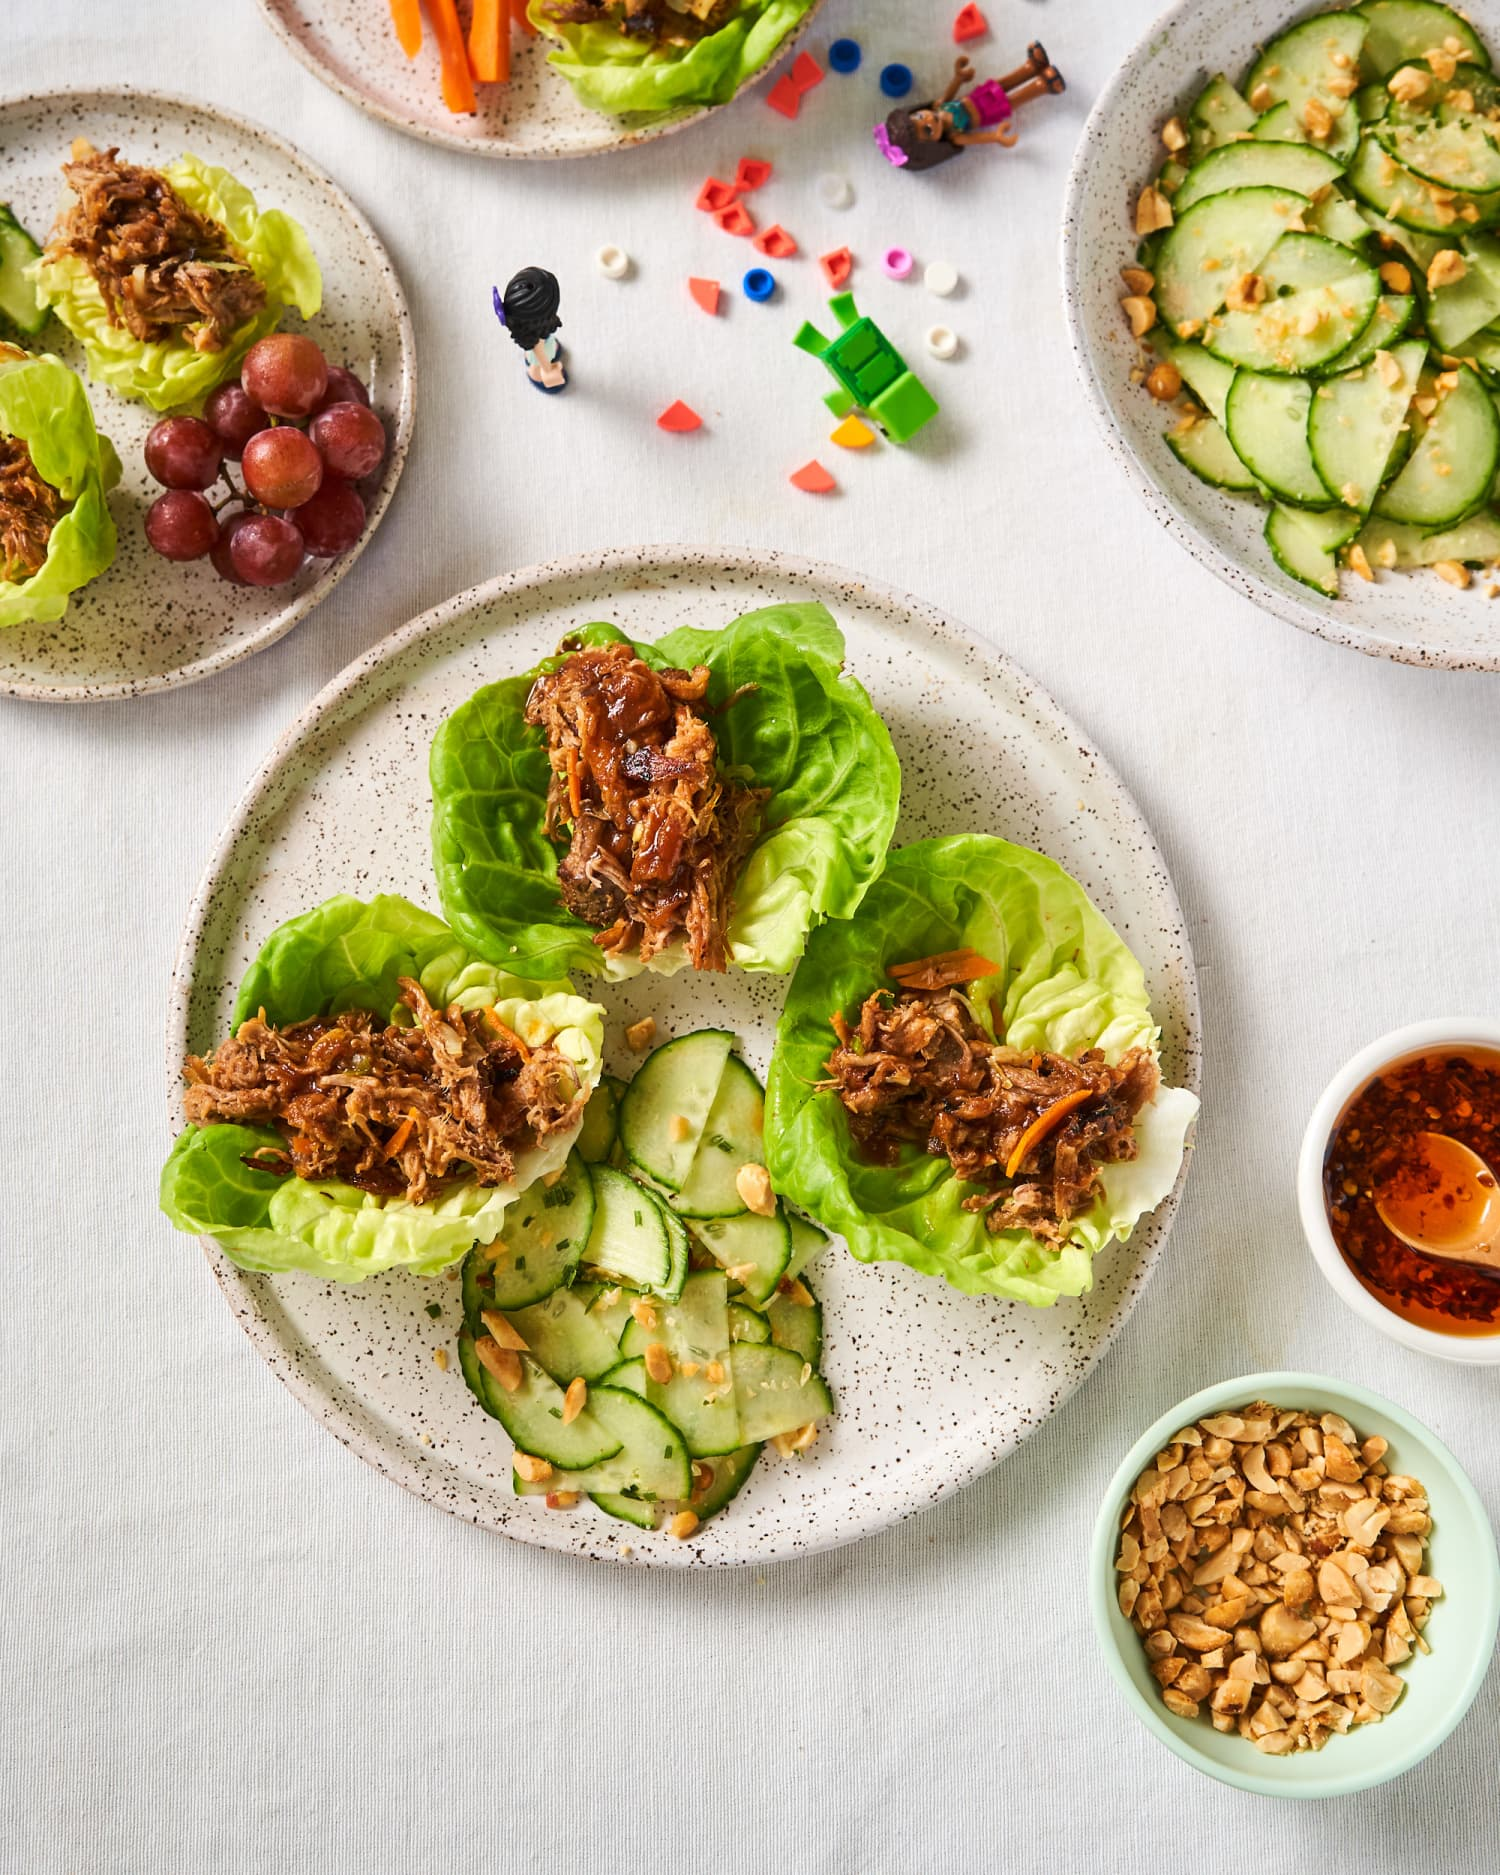 Pulled Pork Lettuce Wraps Are Sweet, Savory, and Refreshing